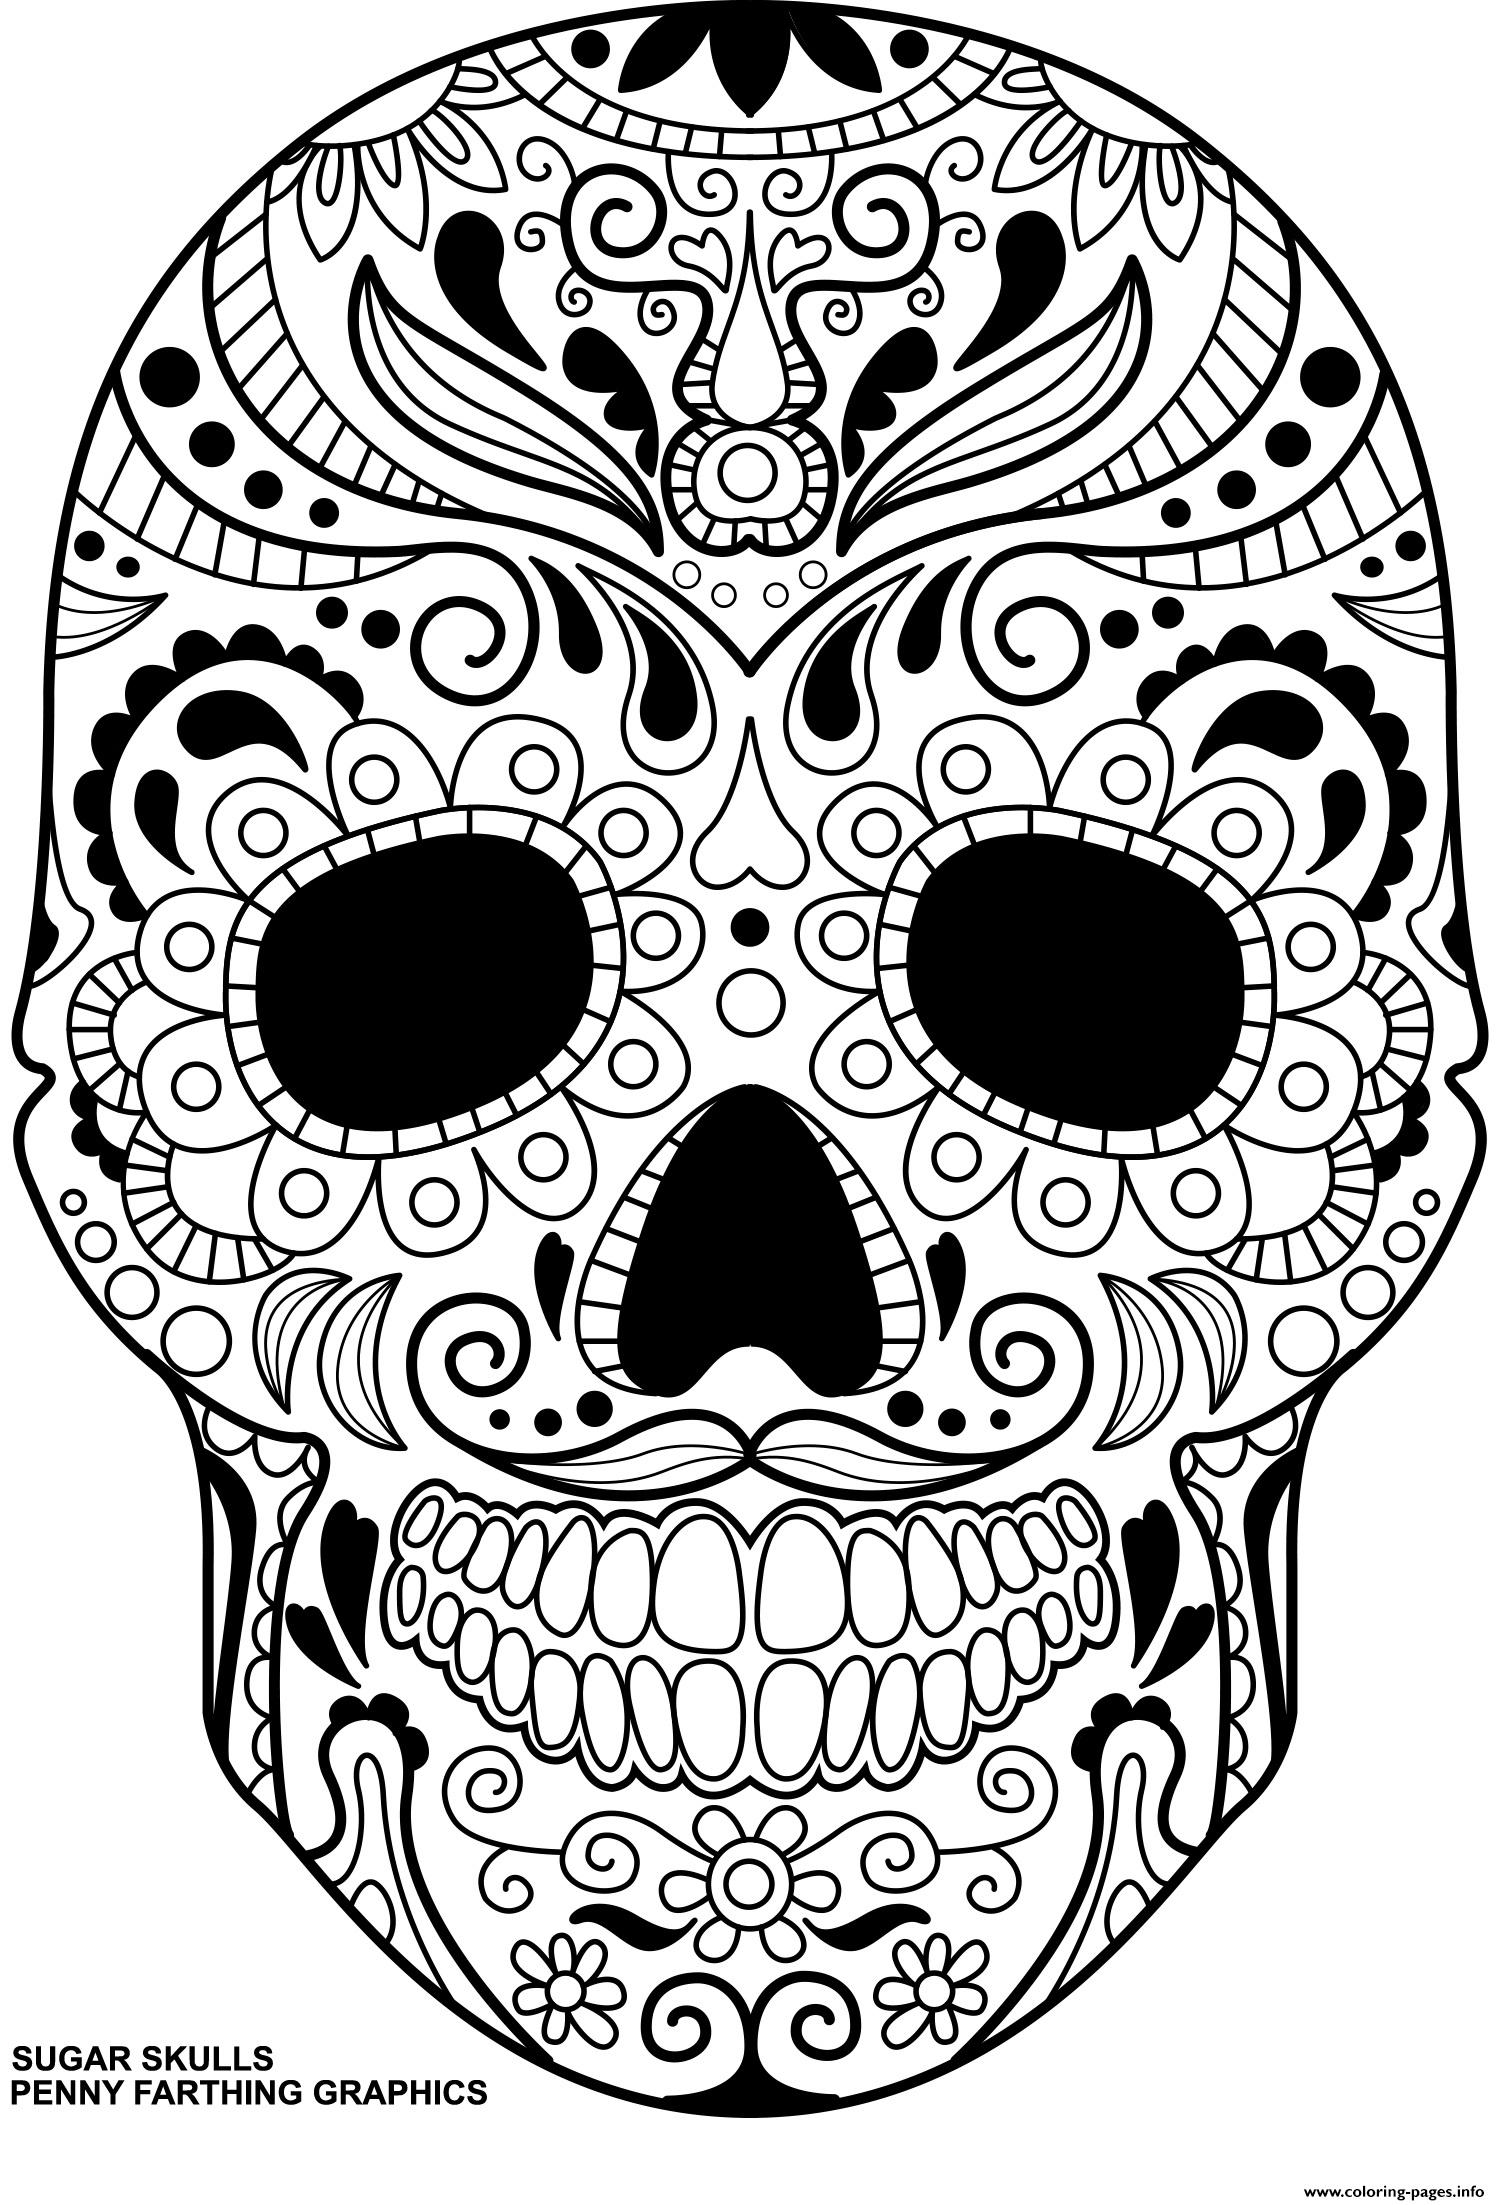 sugar skulls day of the dead calavera coloring pages